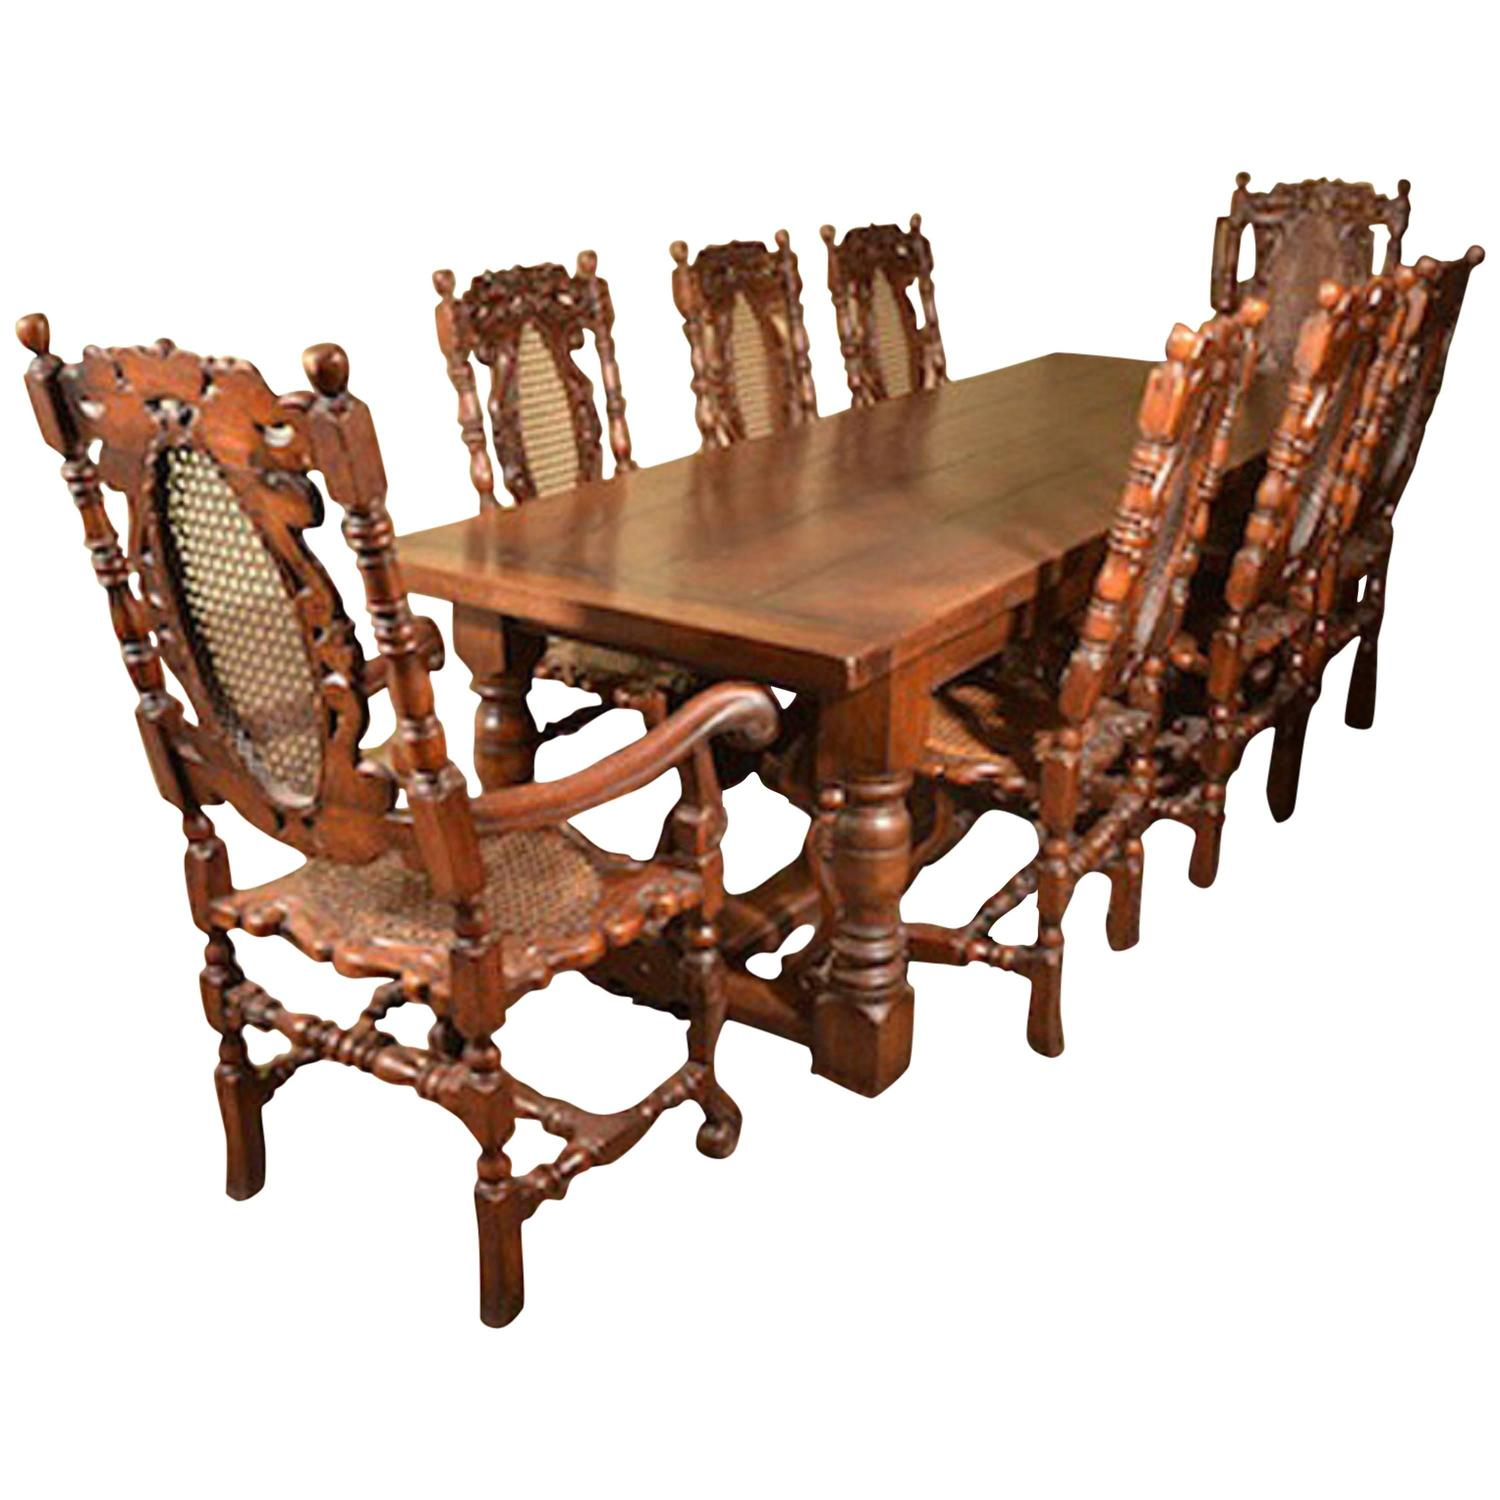 Refectory Dining Table And Eight Carolean Chairs For Sale At 1stdibs